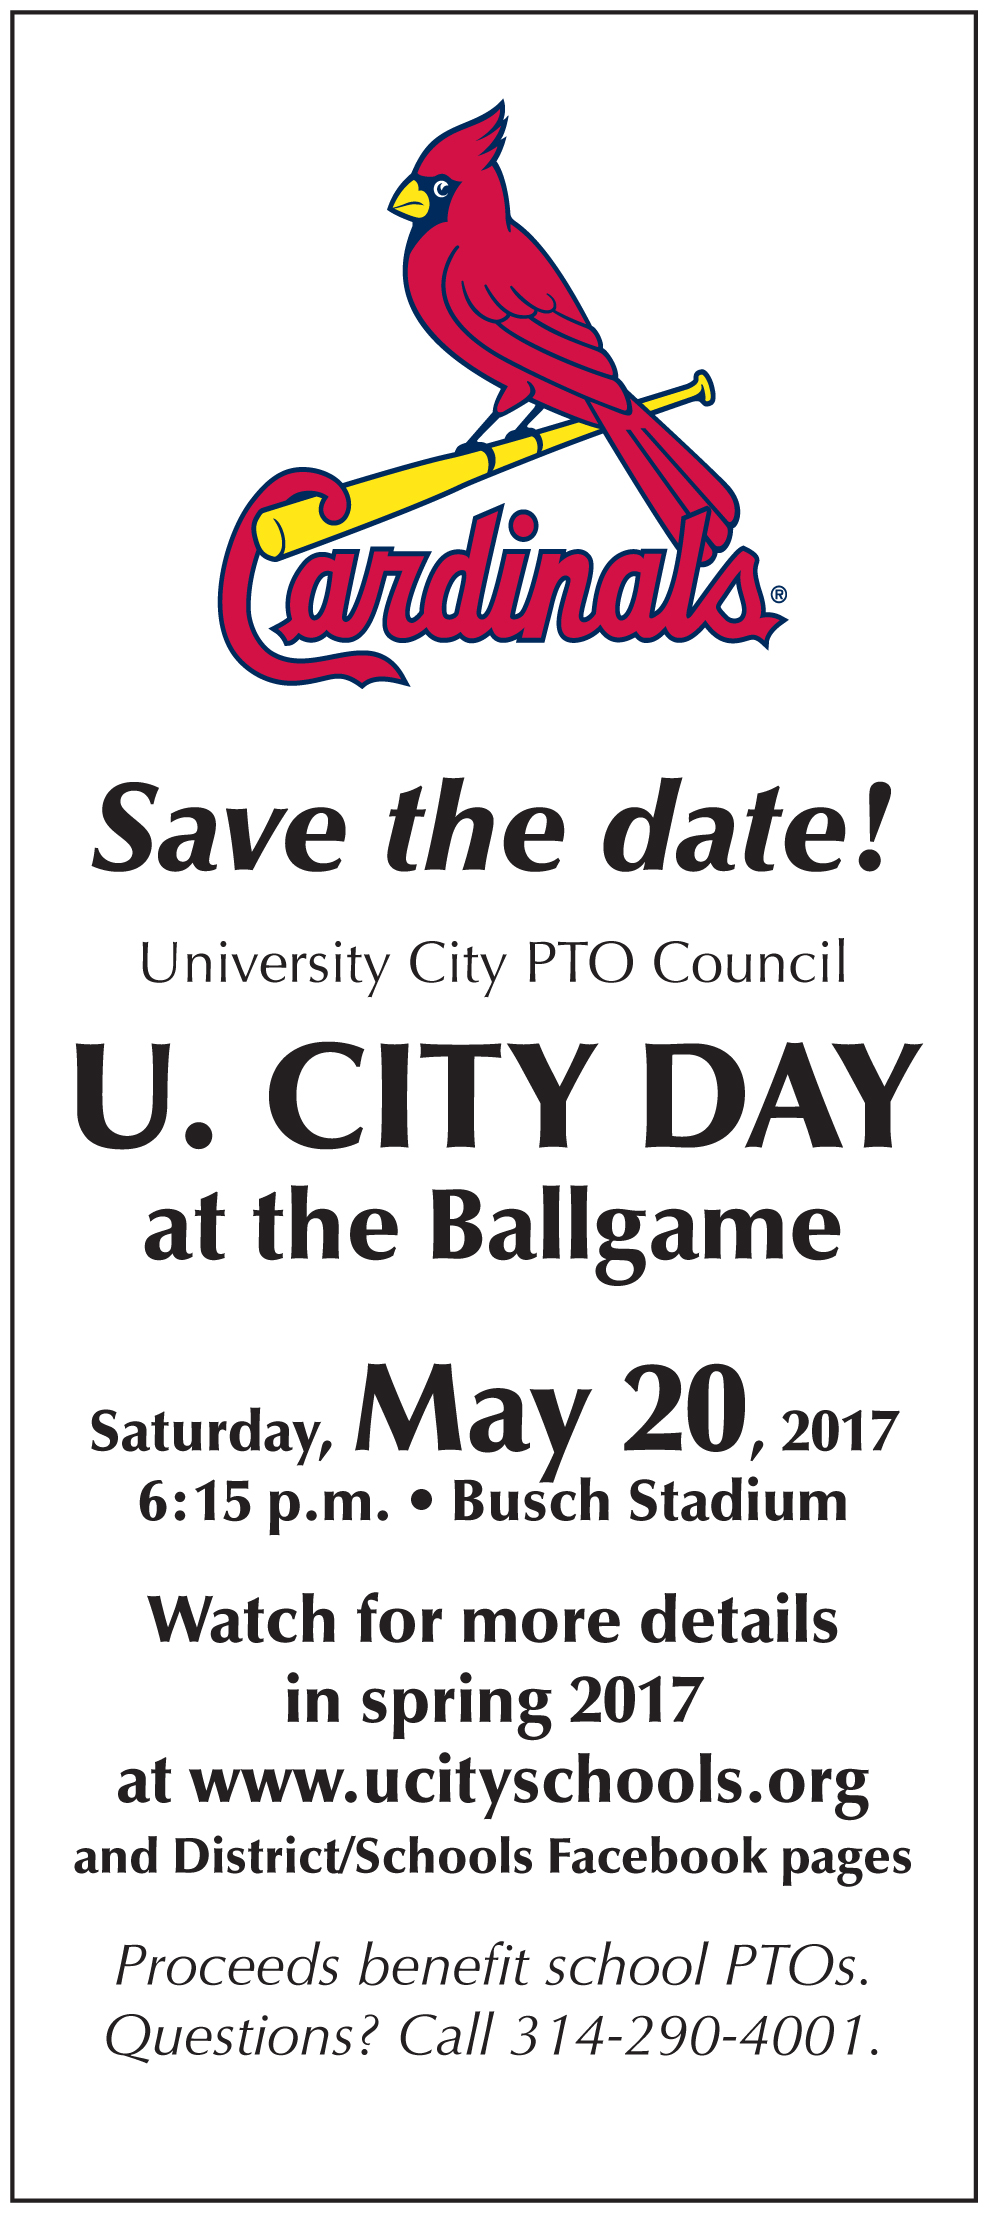 Mark Your Calendar: May 20, 2017